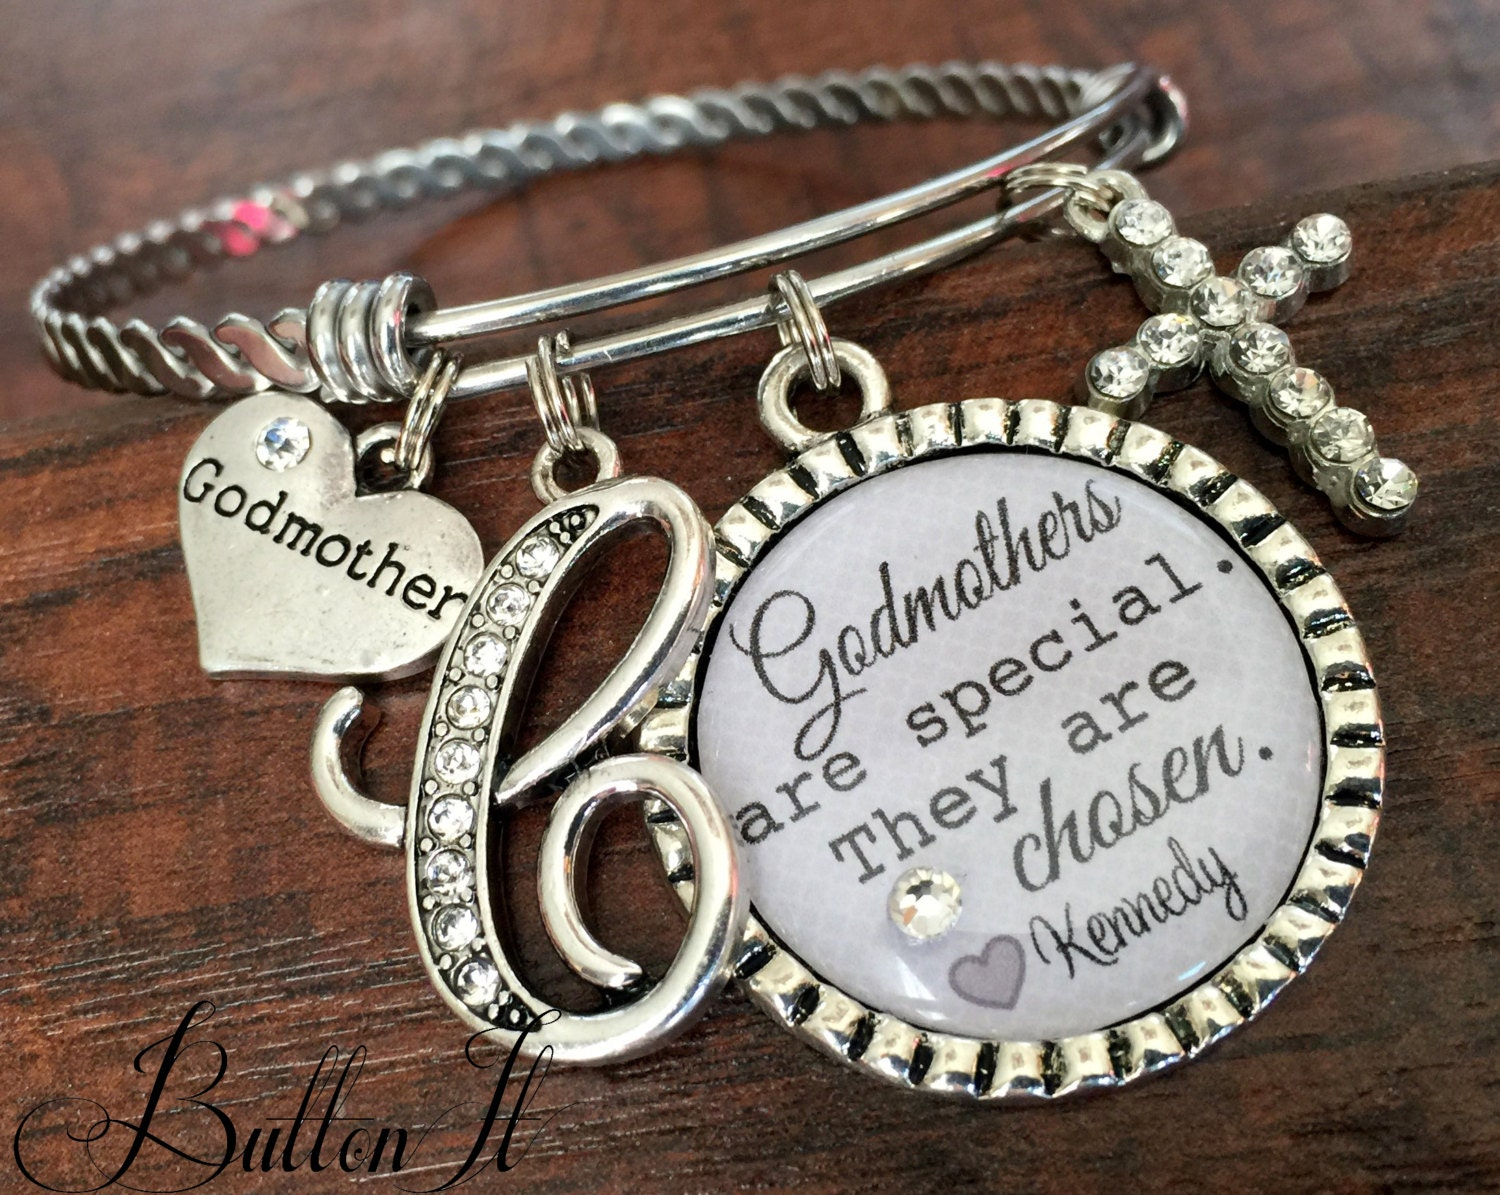 Gift For Godmother Godmother Gift Mothers Day Gift: GODMOTHER Gift Godmother Bracelet Personalized Jewelry